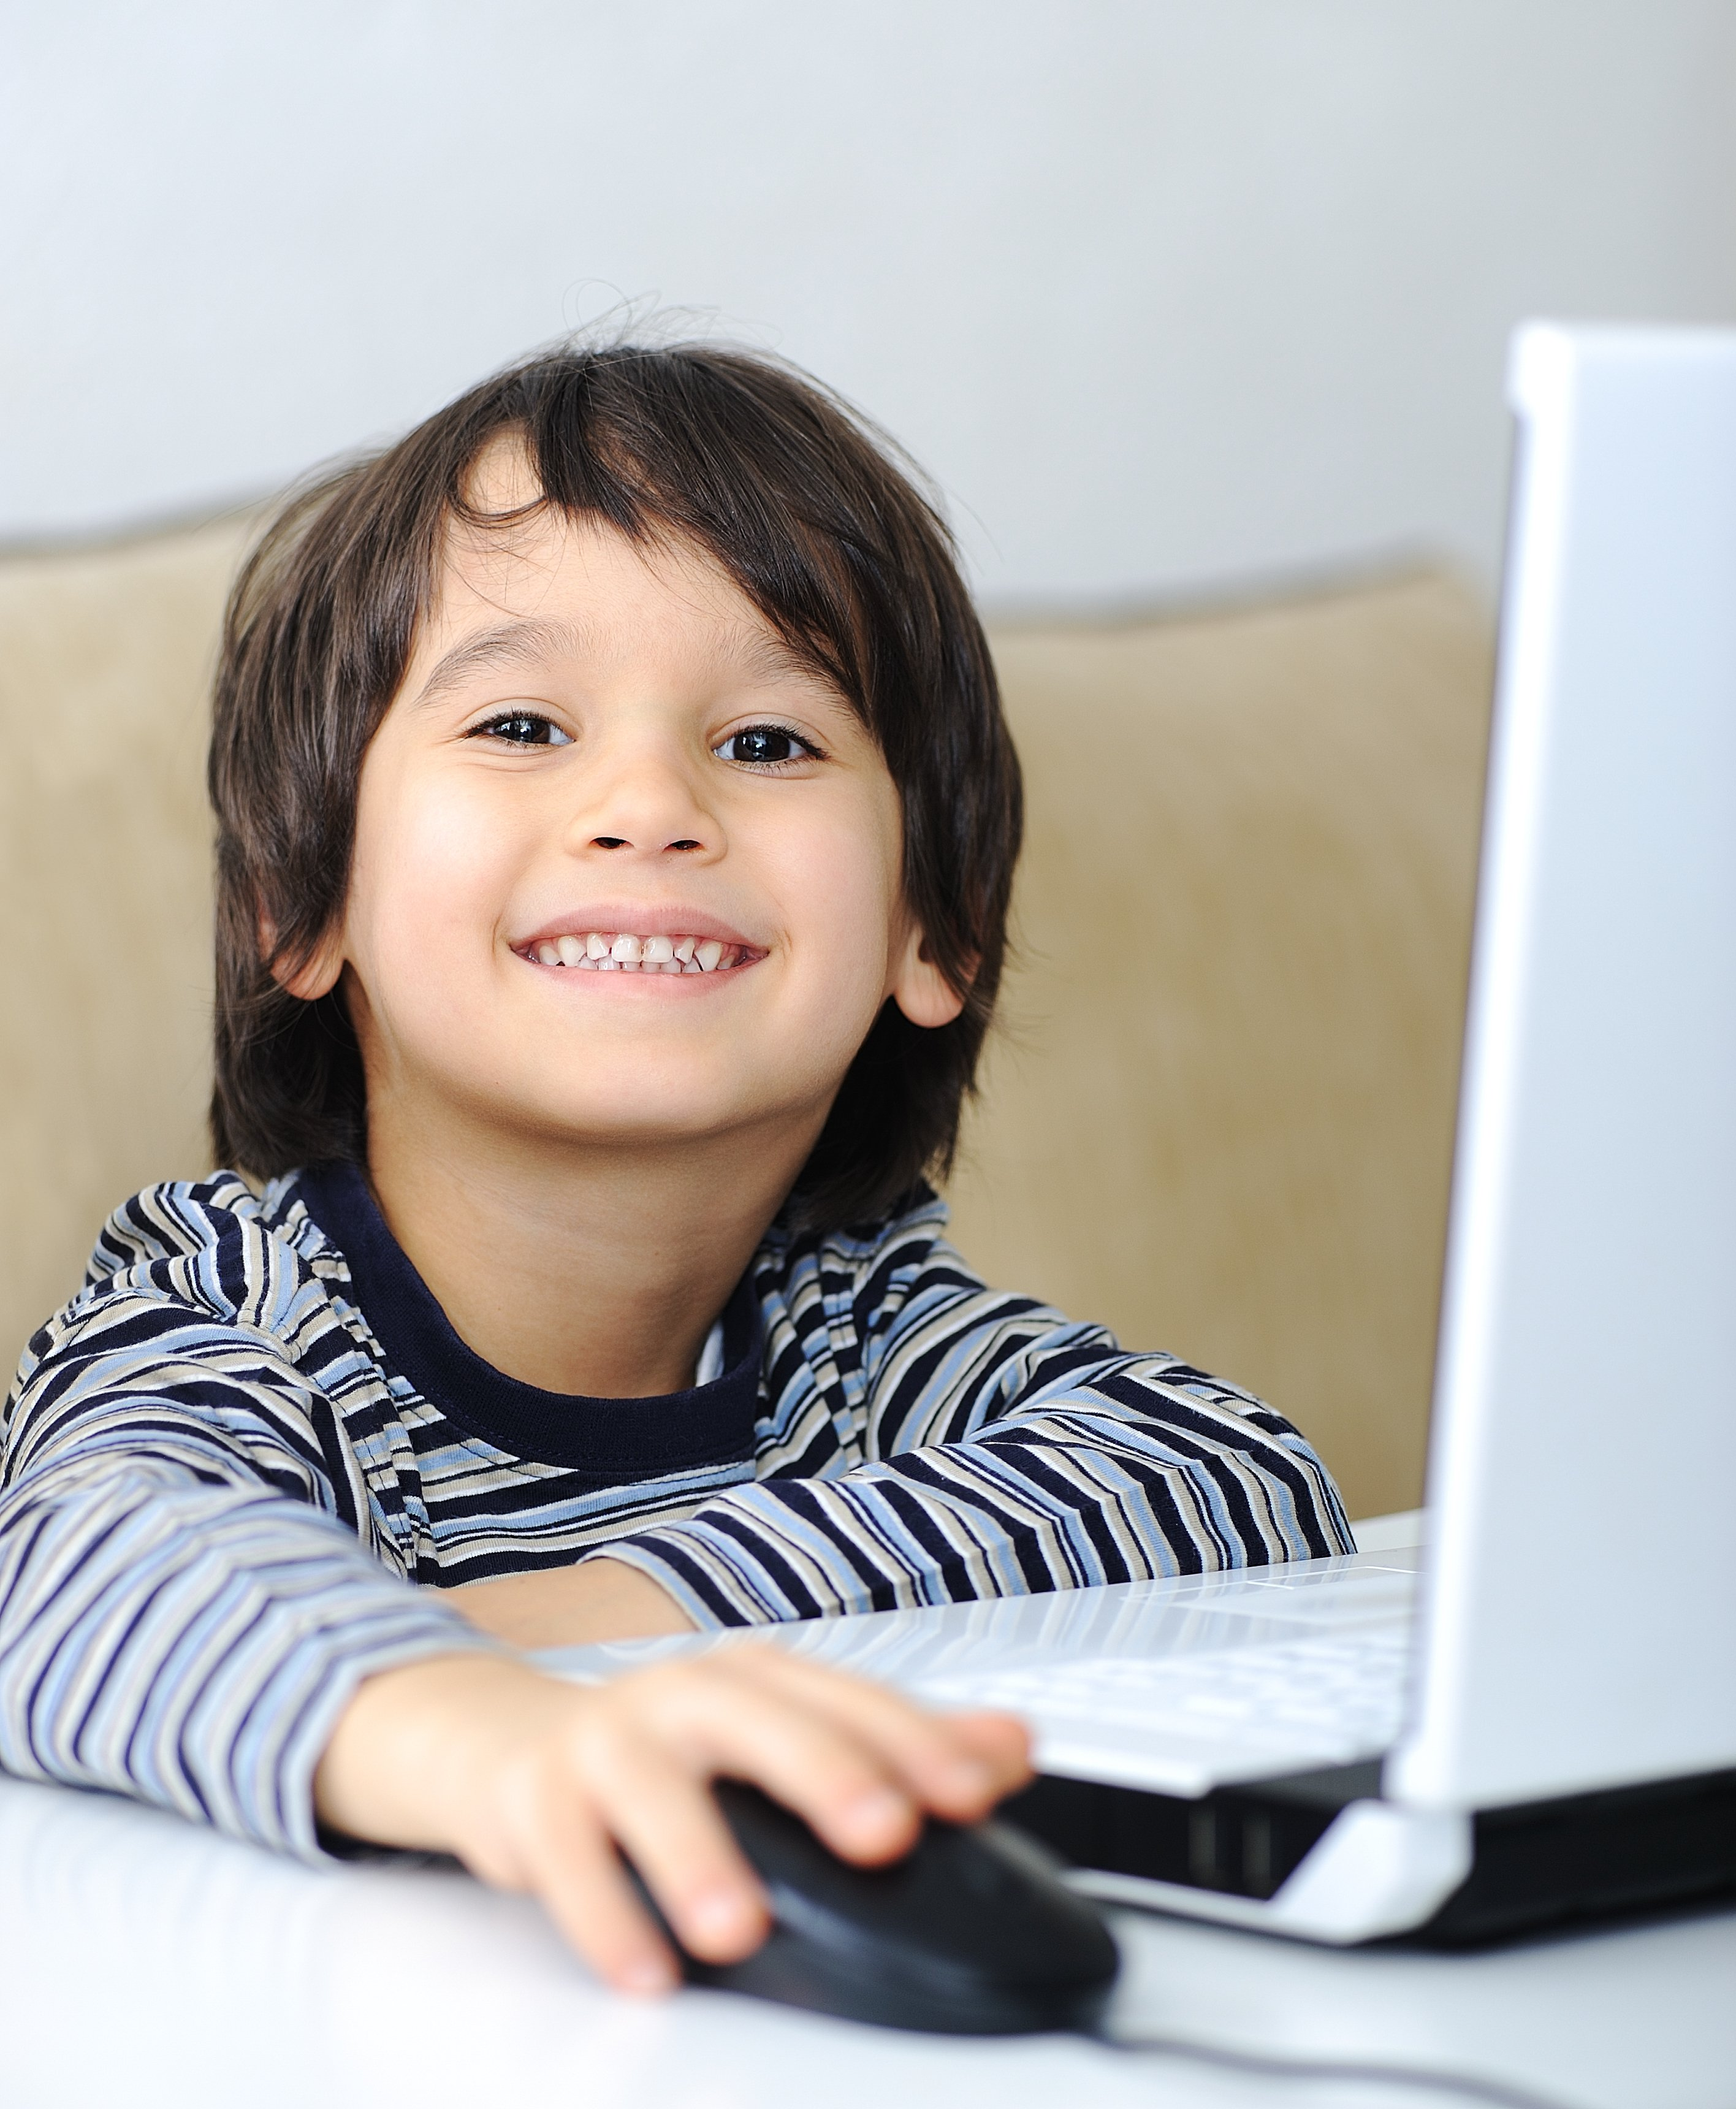 Help Your Elementary Student With Online Learning